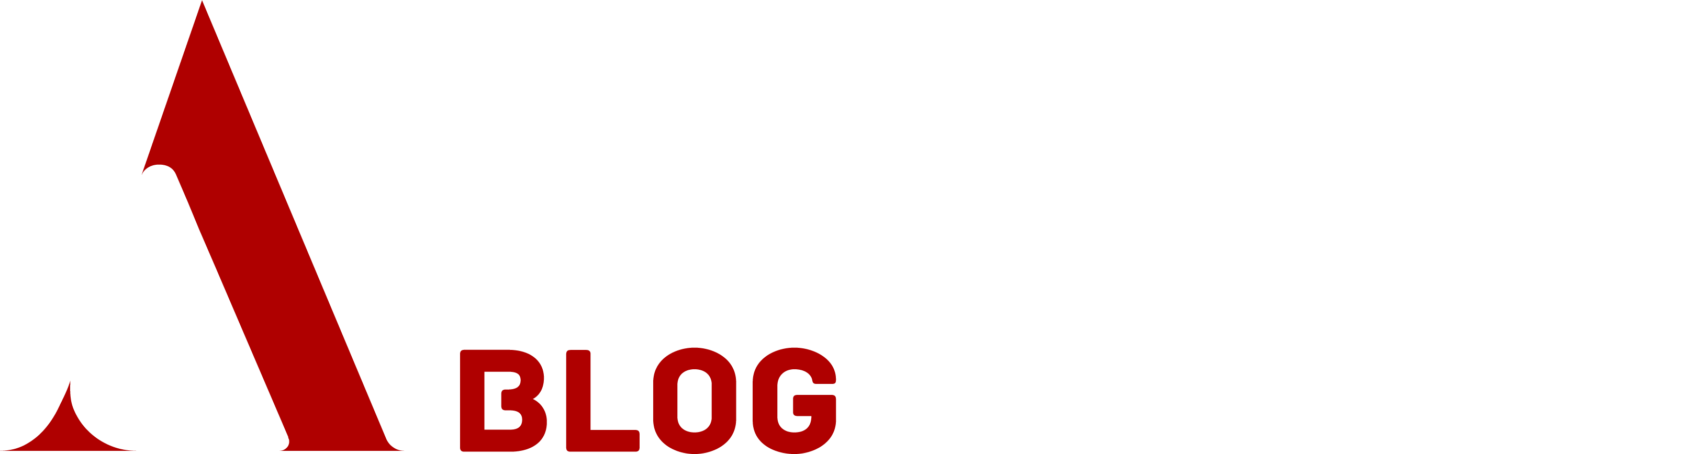 Slovak Series of Poker 2018: Bigger and better than last year!